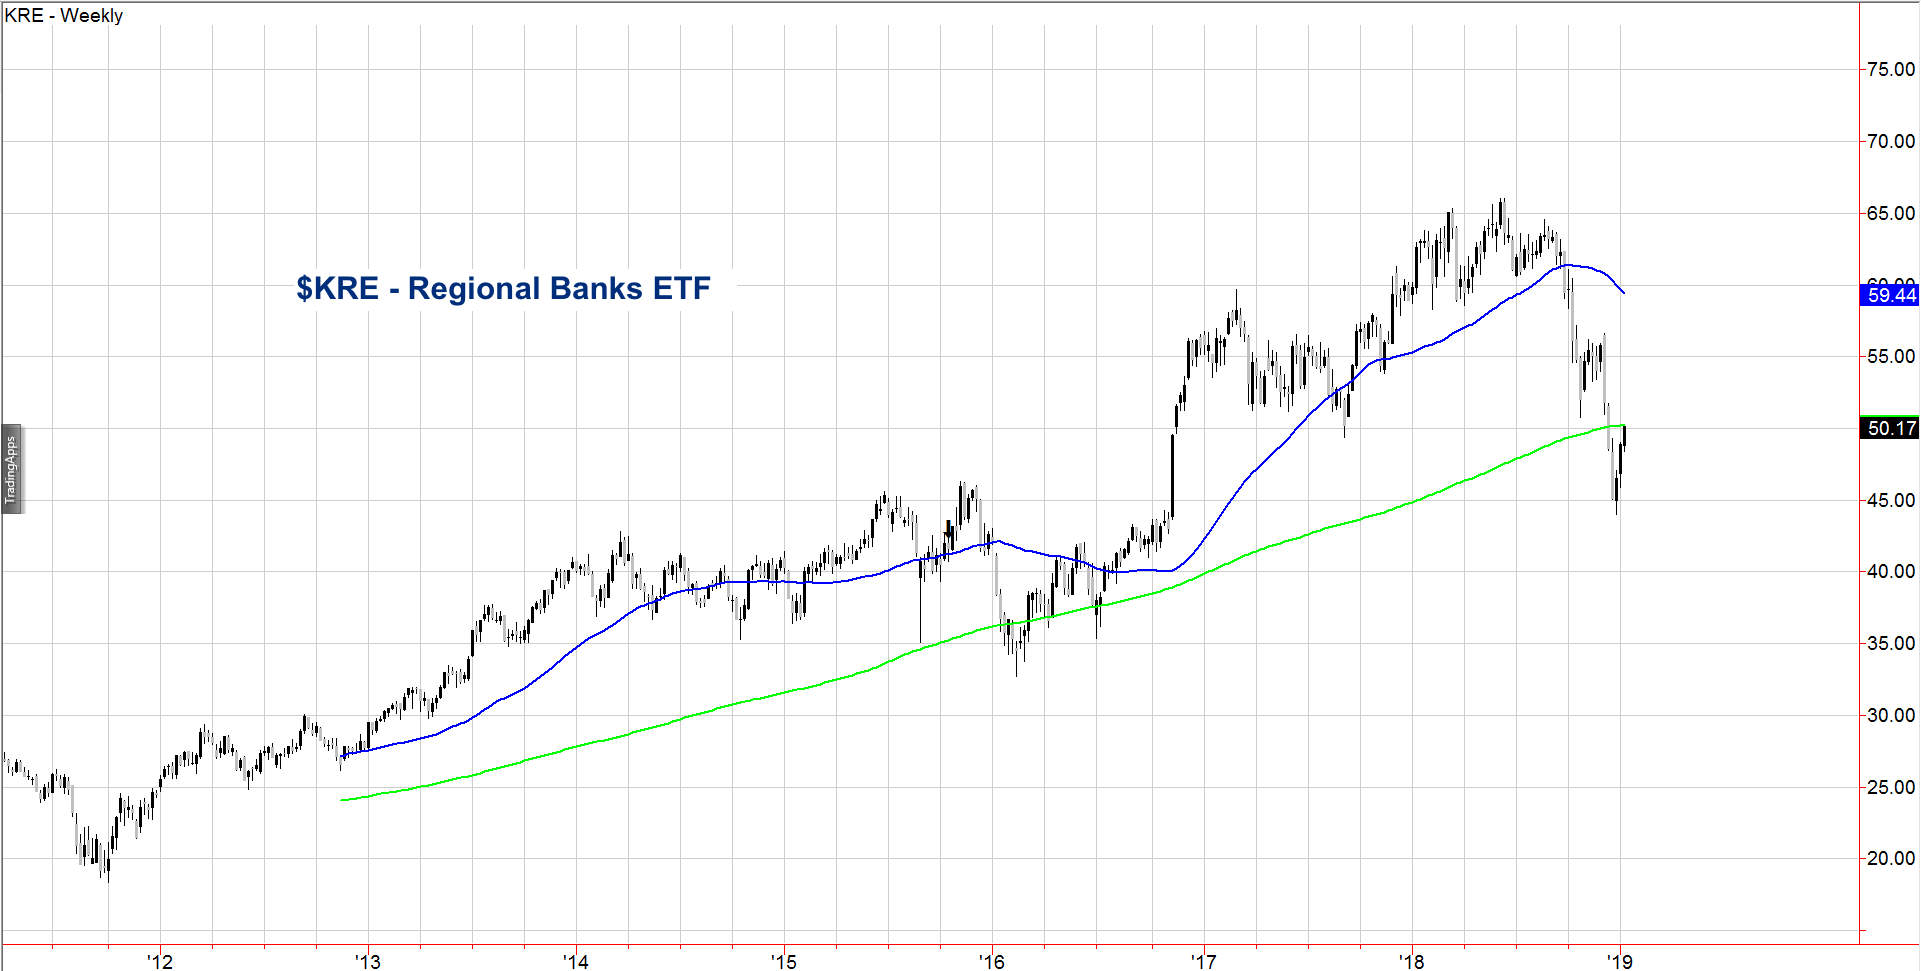 kre regional banks etf stock chart analysis week january 14